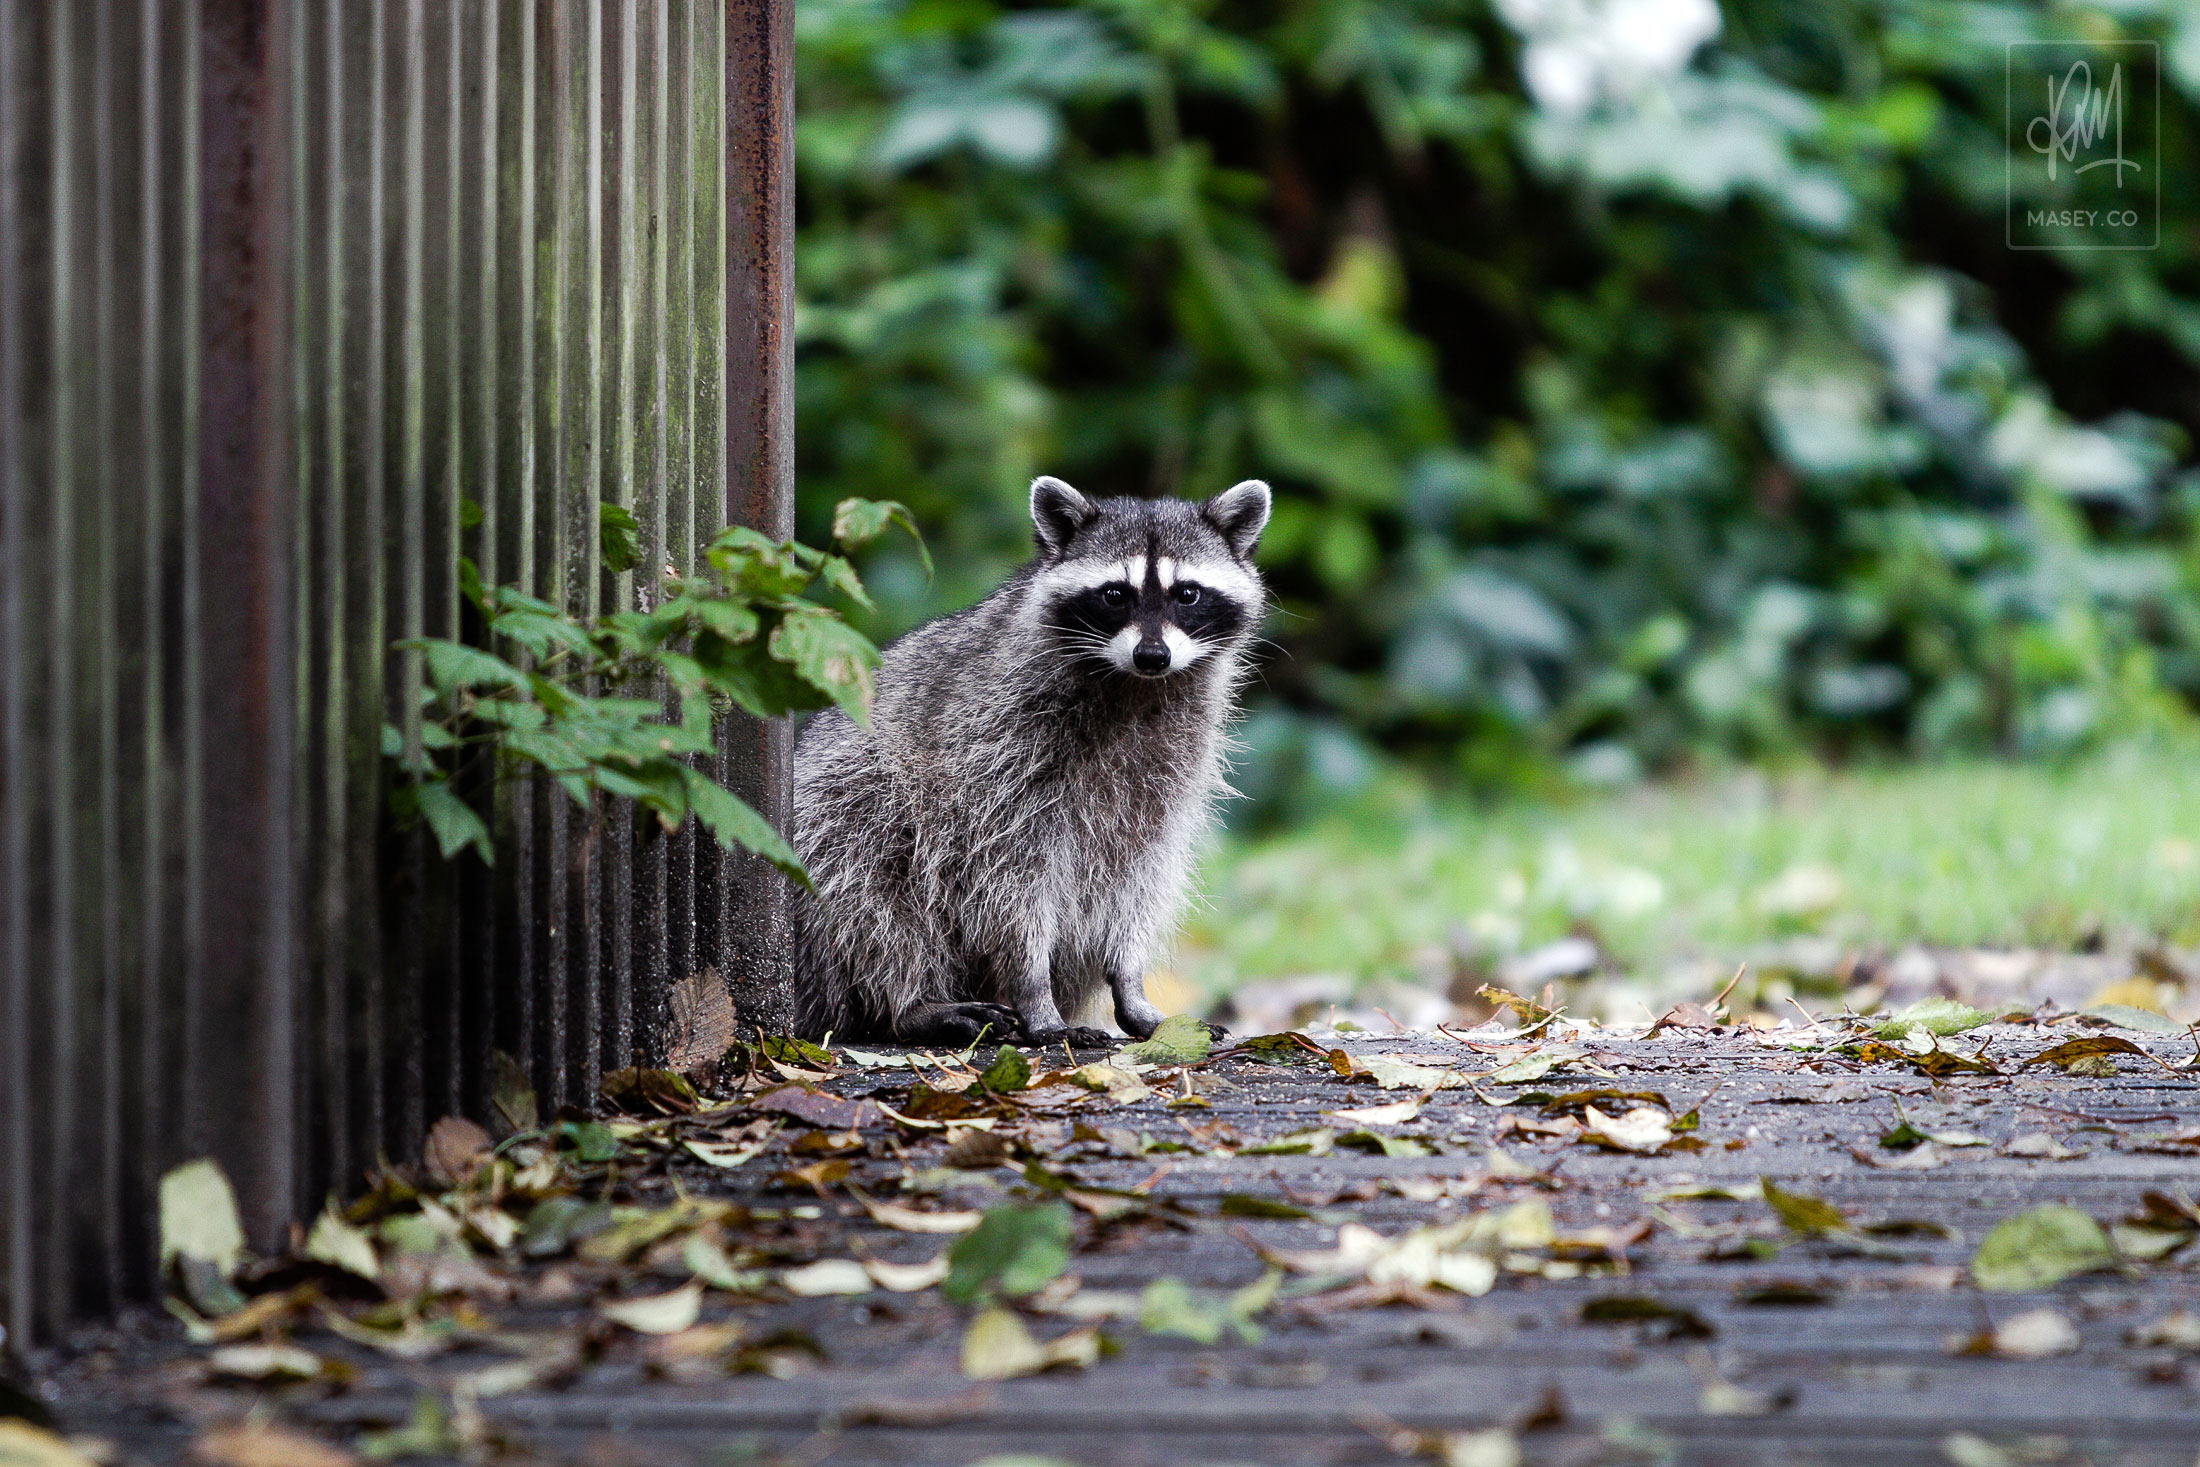 A Stanley Park, Lost Lagoon Raccoon